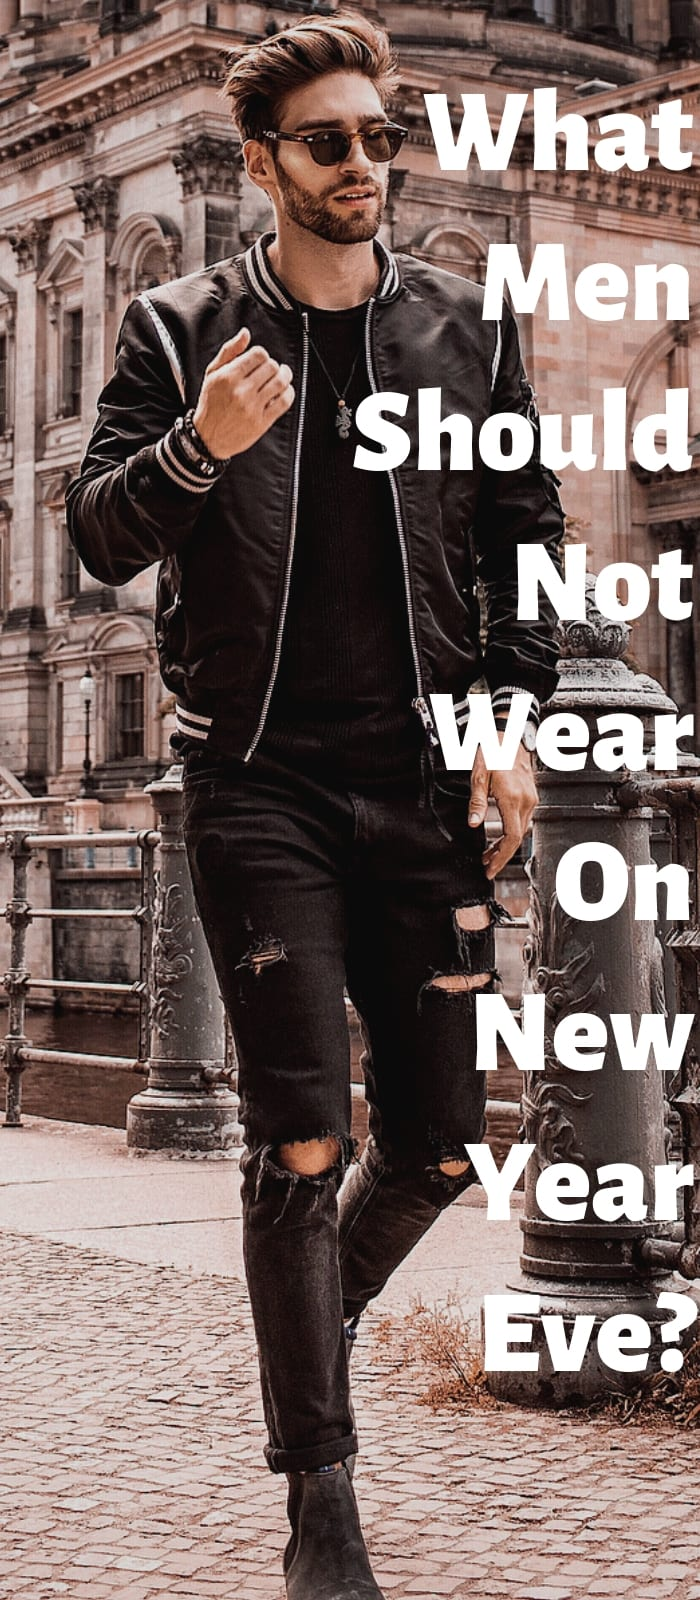 what men should not wear on New Year Eve